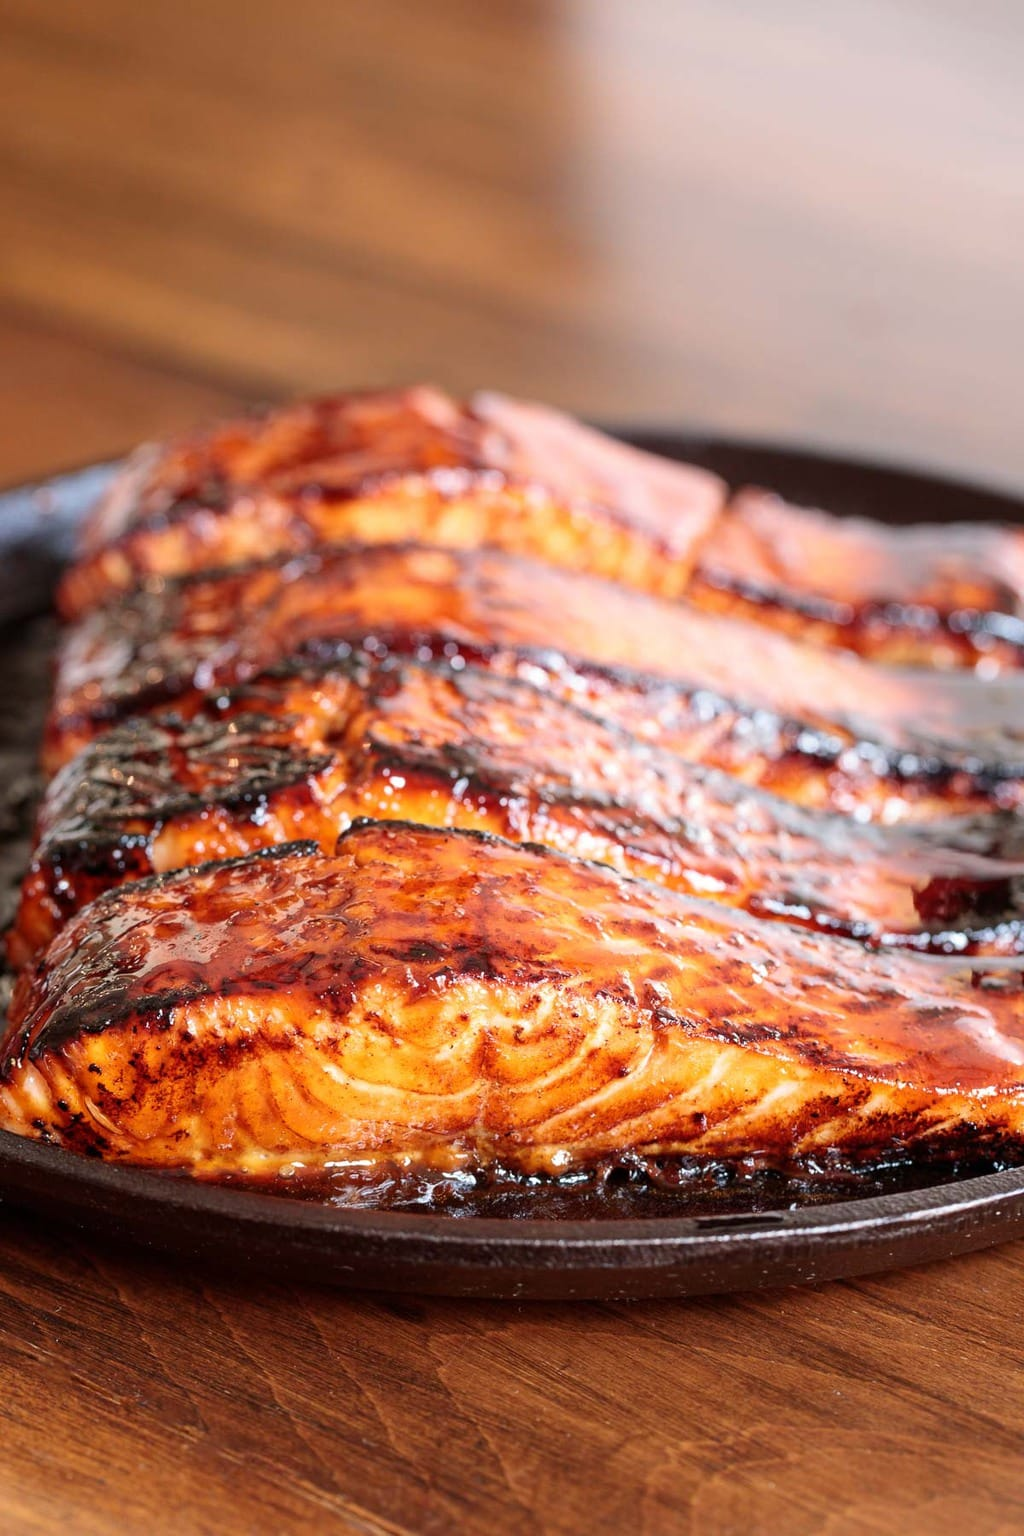 Extreme closeup photo of a piece of Honey Coriander Make-Ahead Salmon in a round iron skillet on a wood table.